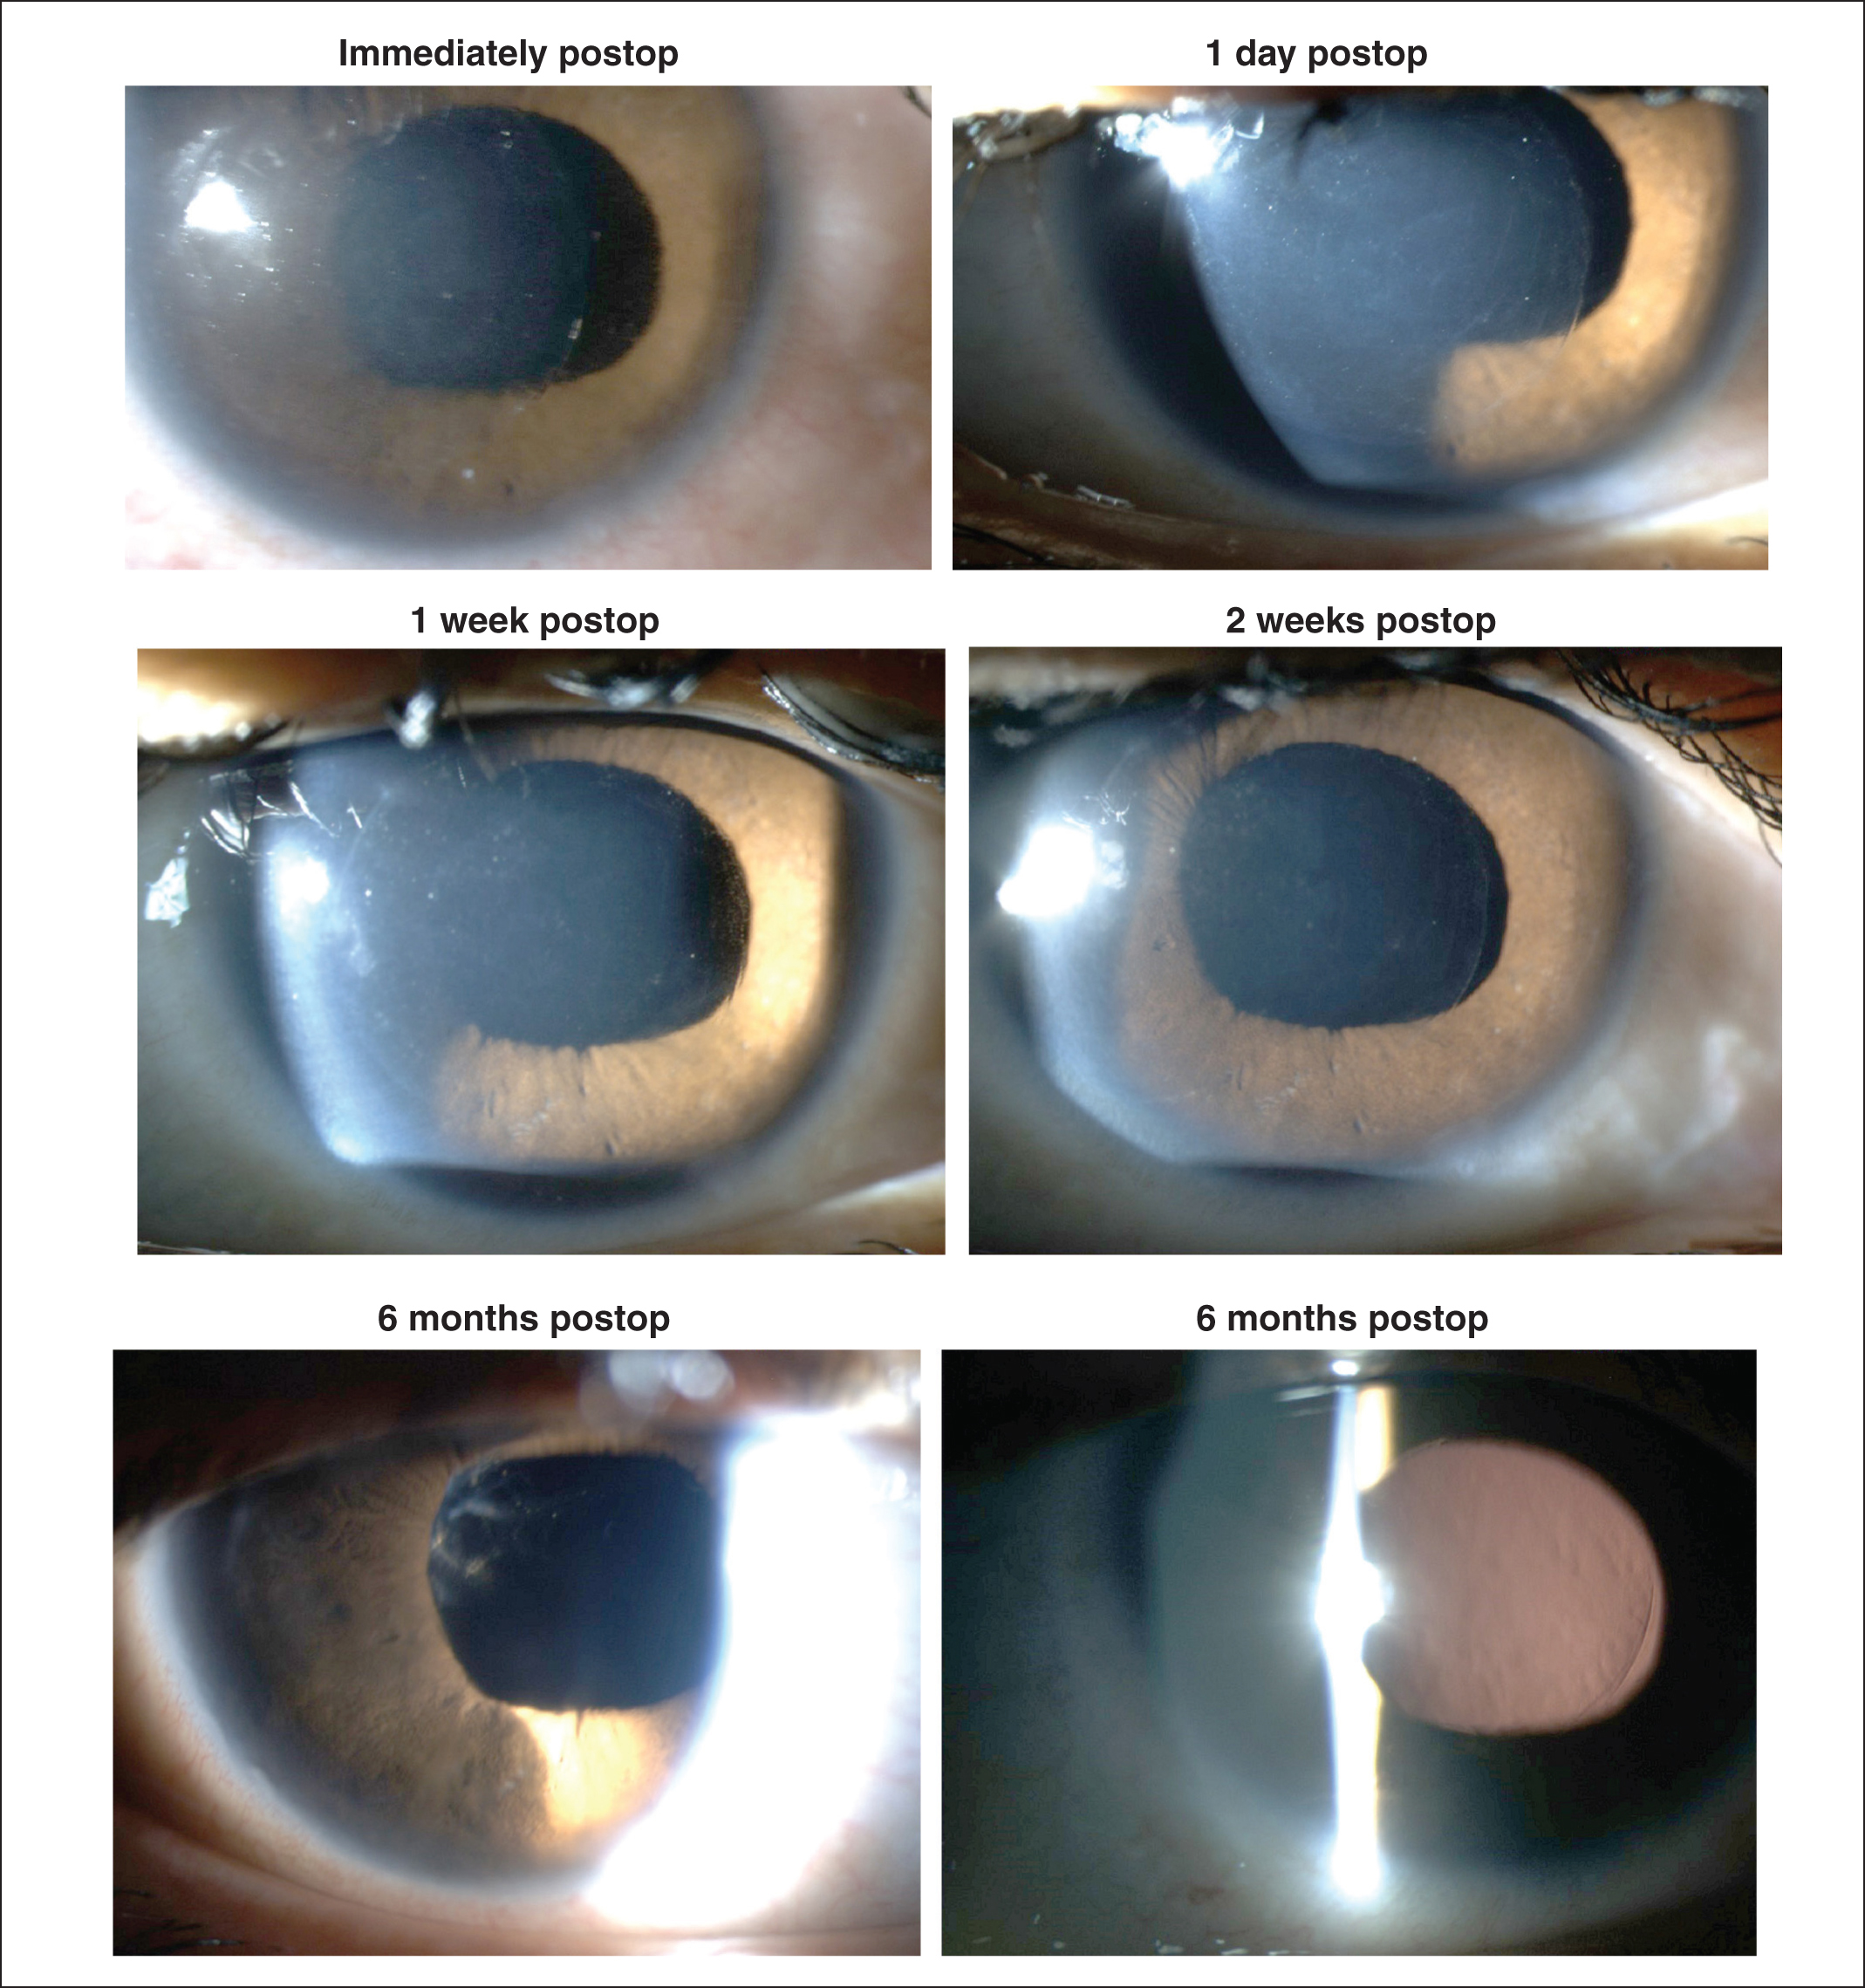 Slit-lamp photogaphs over the 6-month postoperative course after endokeratophakia showing that the cornea remained clear. The lenticule appears decentered with respect to the pupil because the pupil was irregular and eccentric, whereas the lenticule had been centered on the corneal vertex coincident with the axis of fixation.